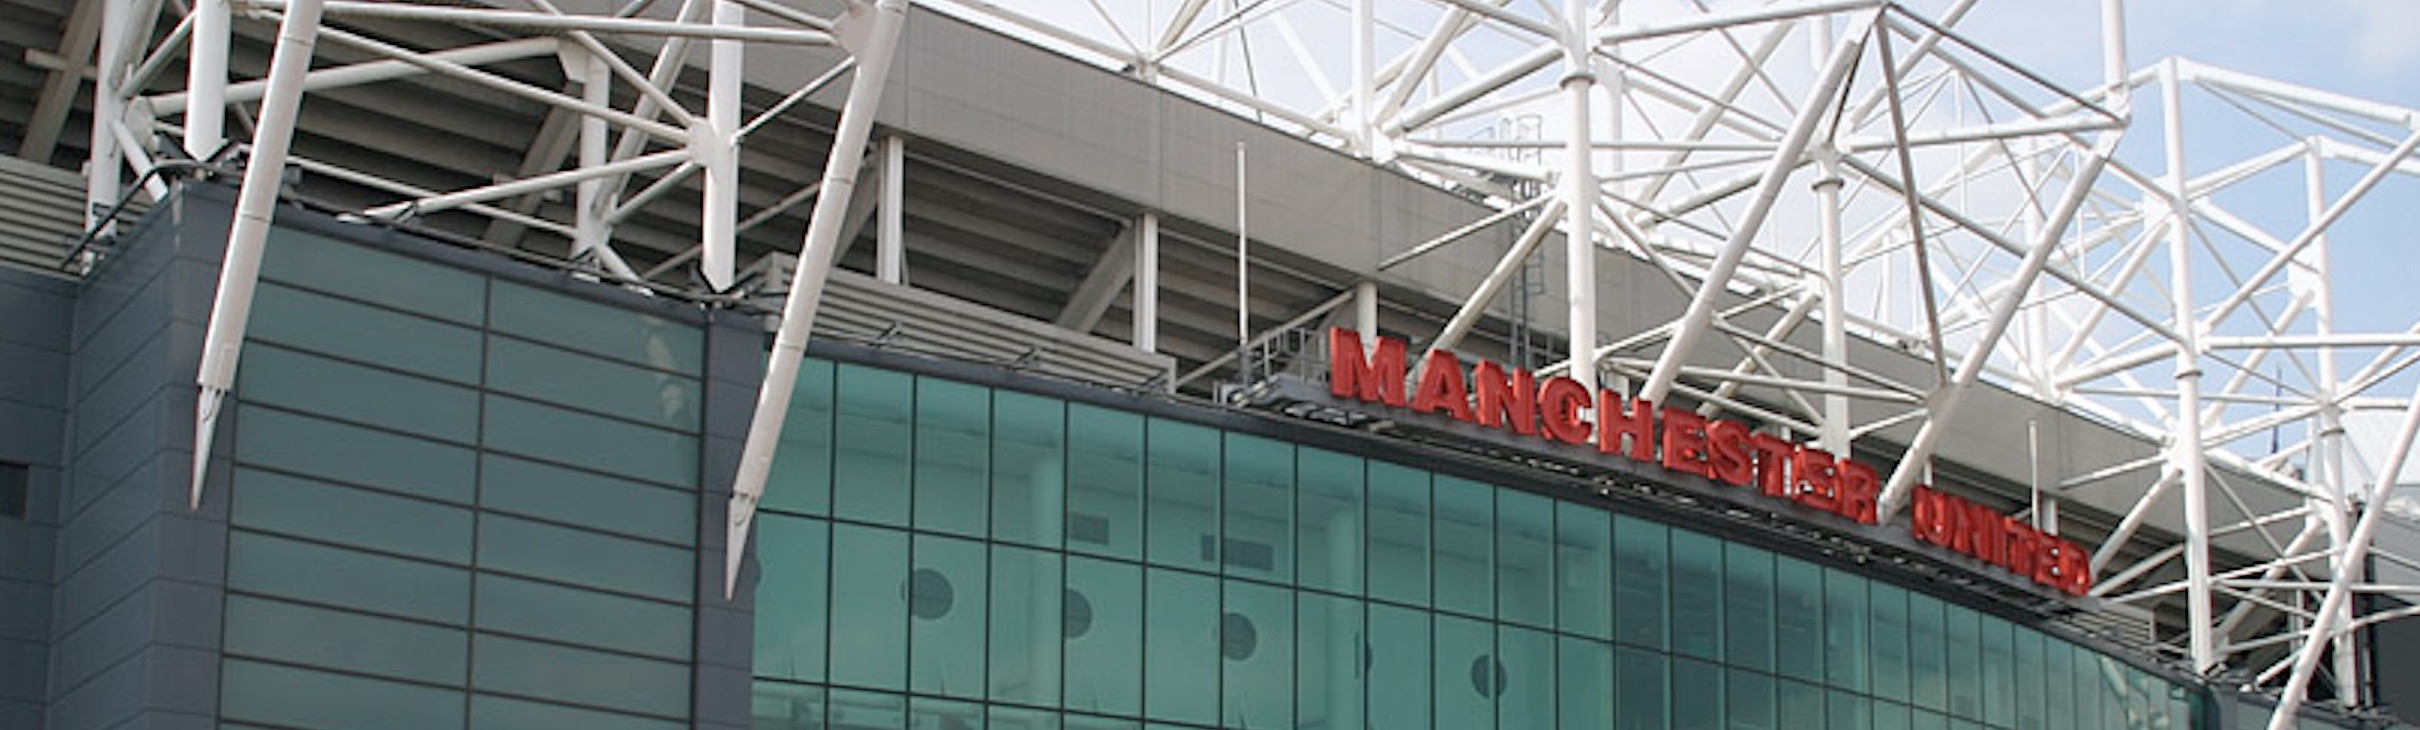 Man United V Stoke - Monday Night Stay